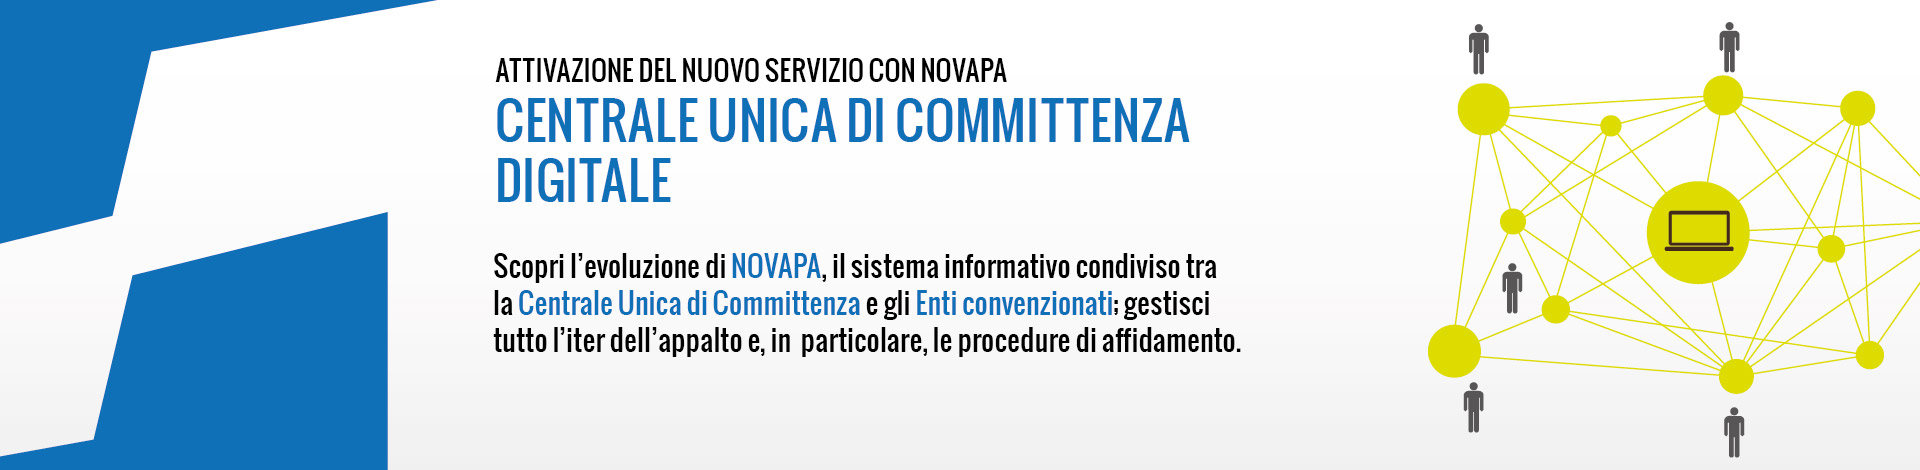 slide-centrale-unica-committenza